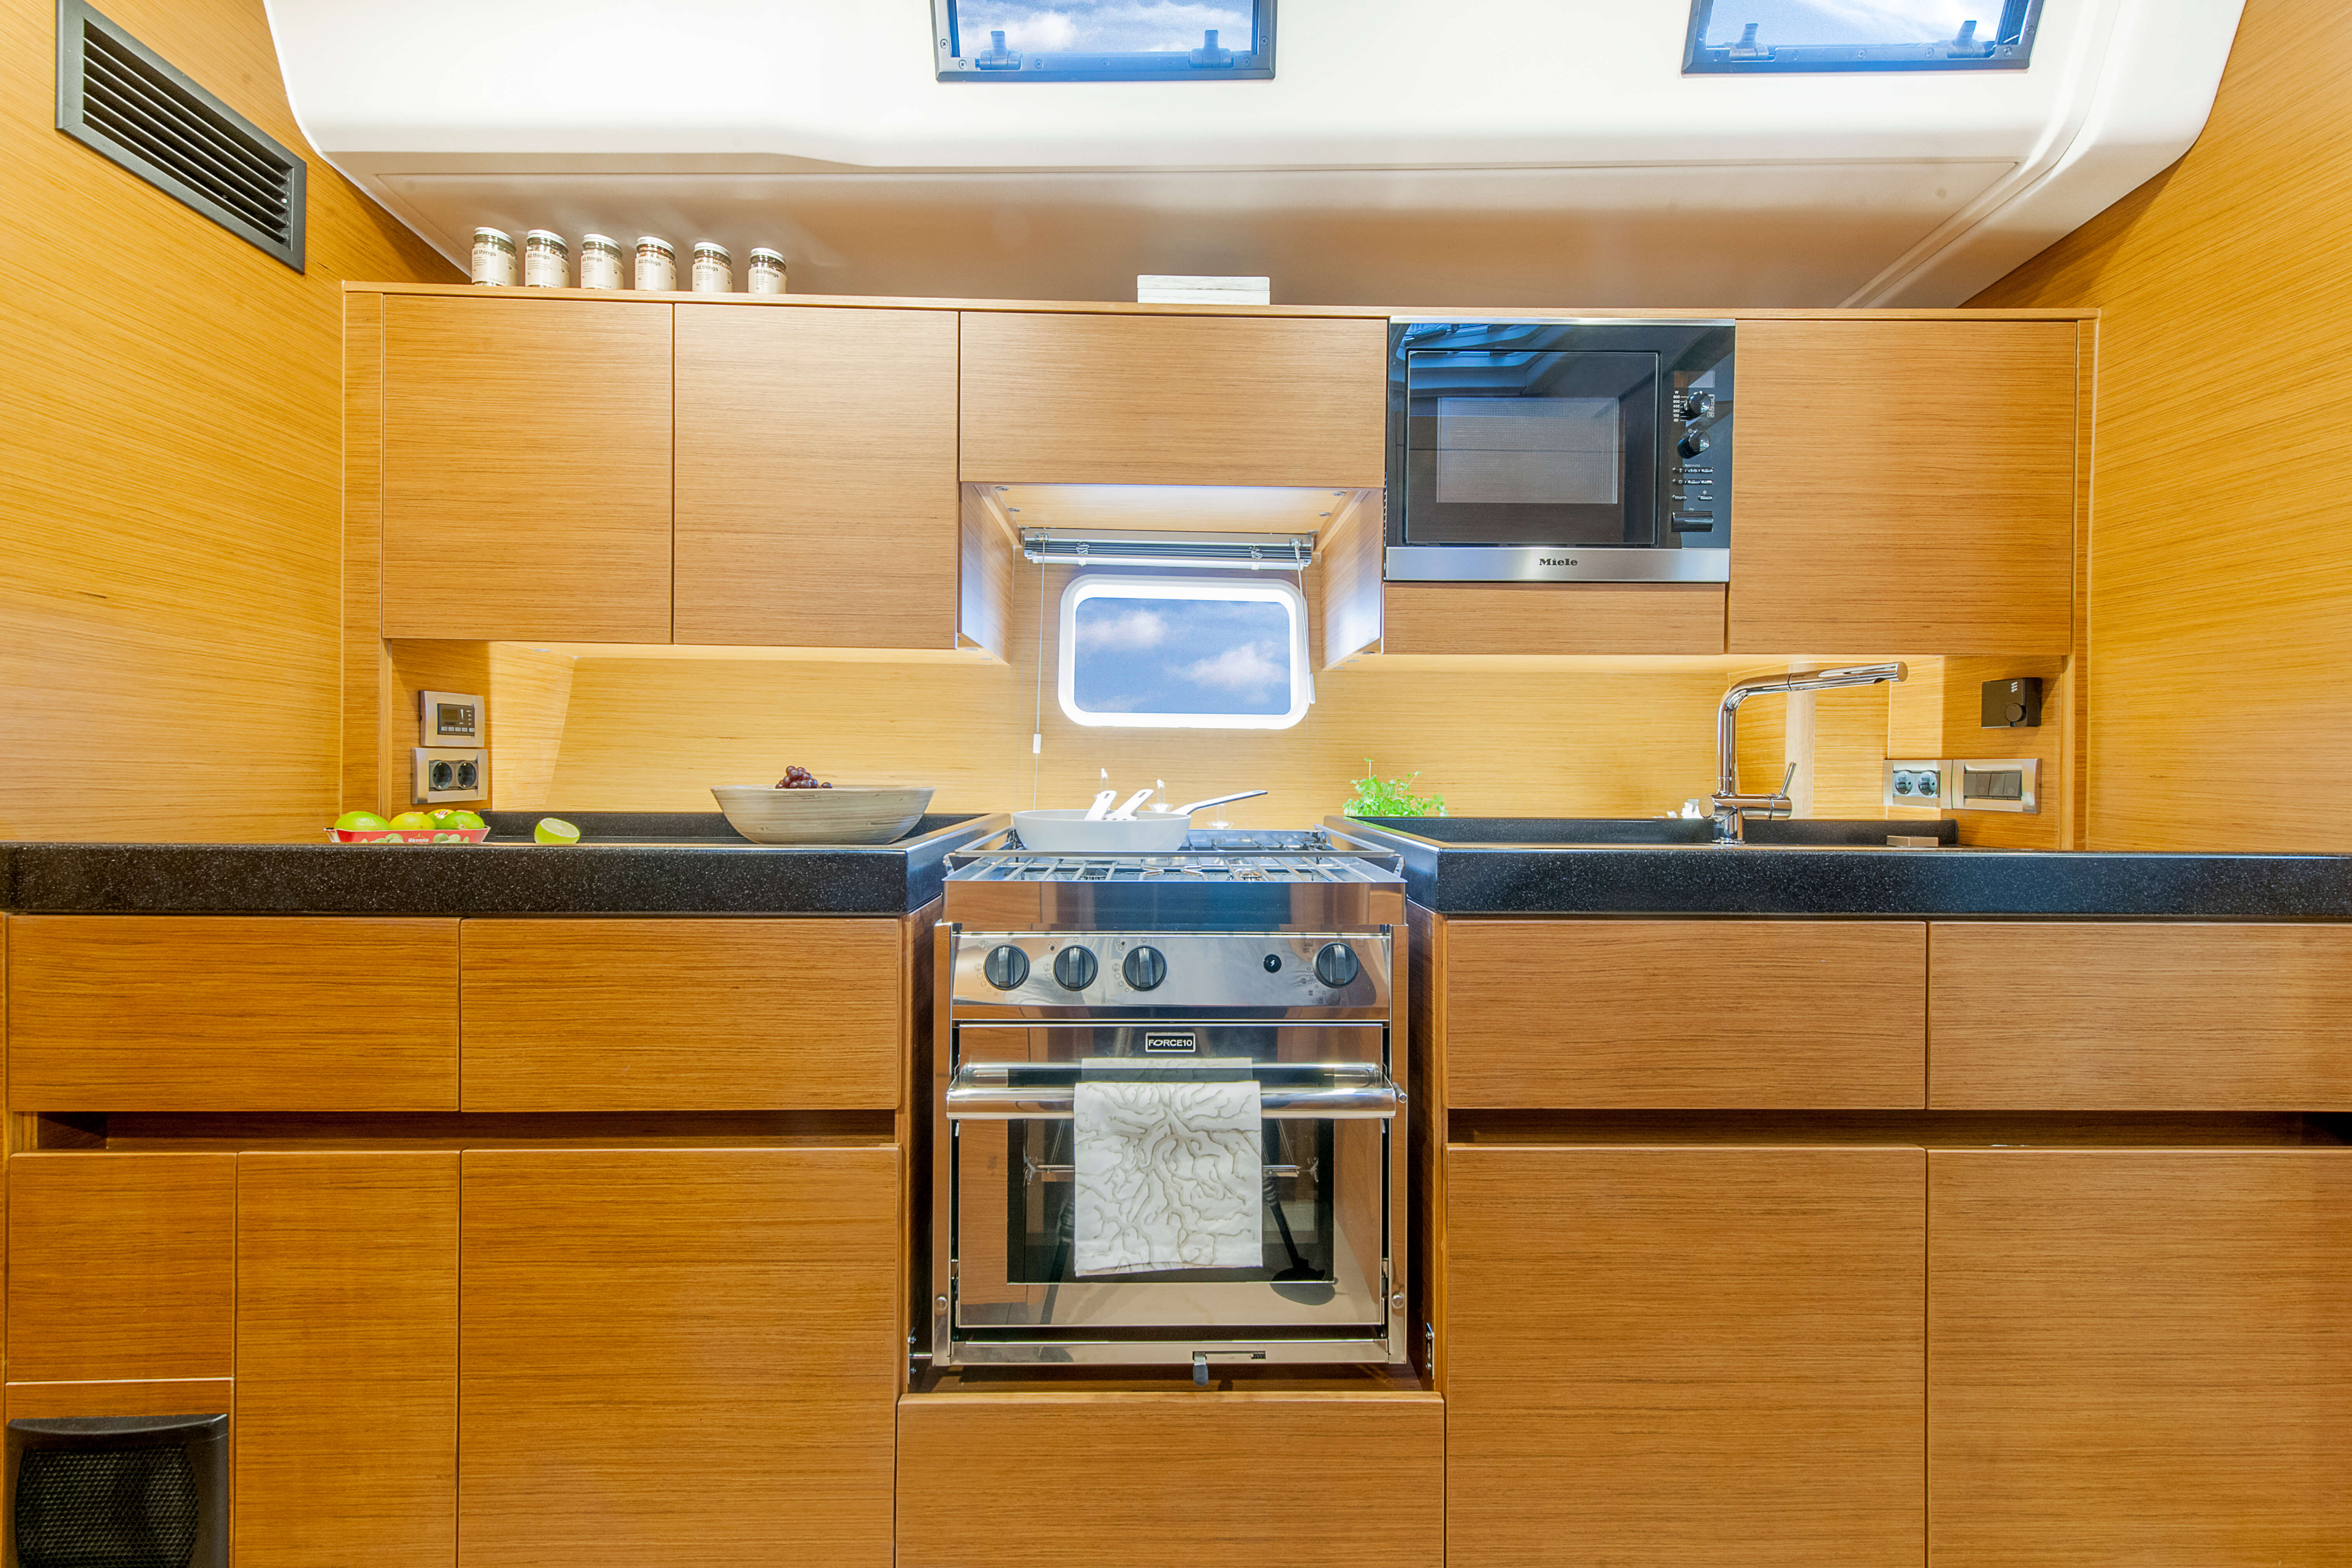 Hanse 675 Interior view pantry | oven, microwave Miele, worktop Corian Antracite | Hanse